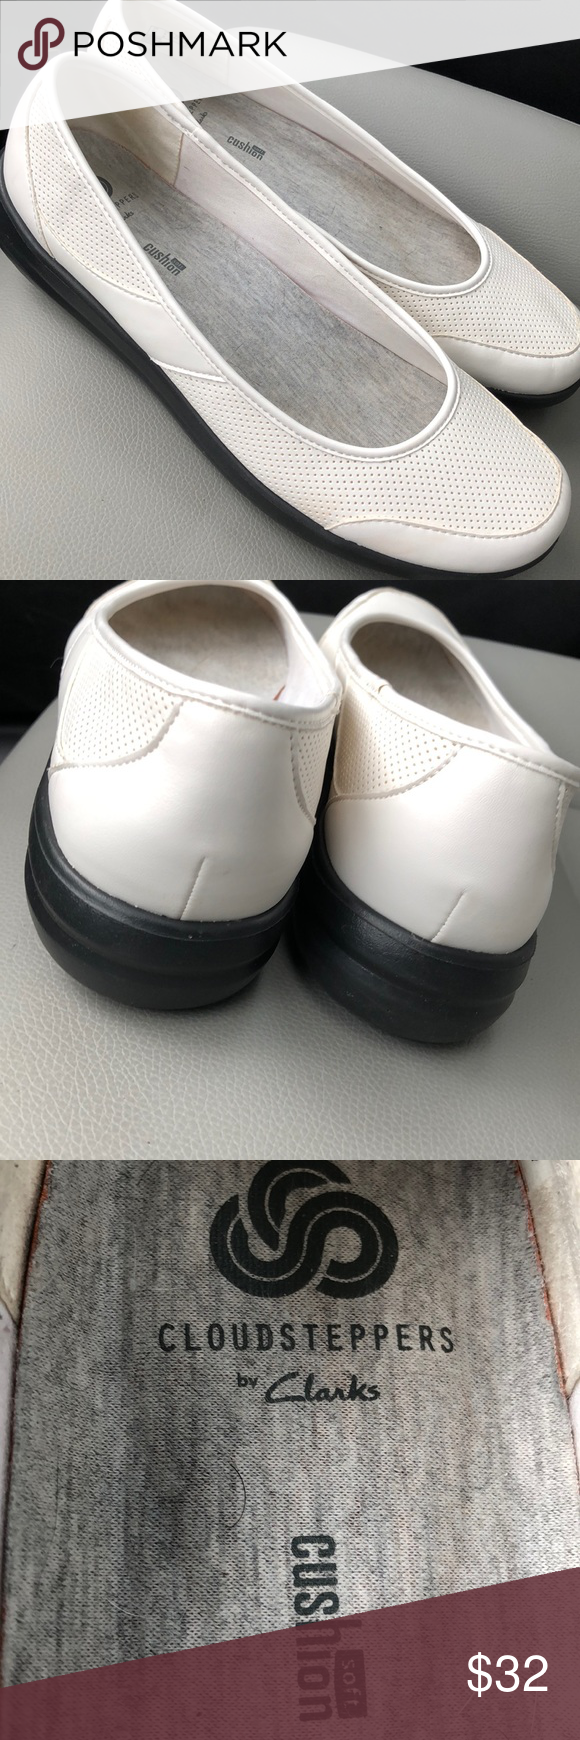 CLARKS Cloud Steppers 9 | Clarks shoes